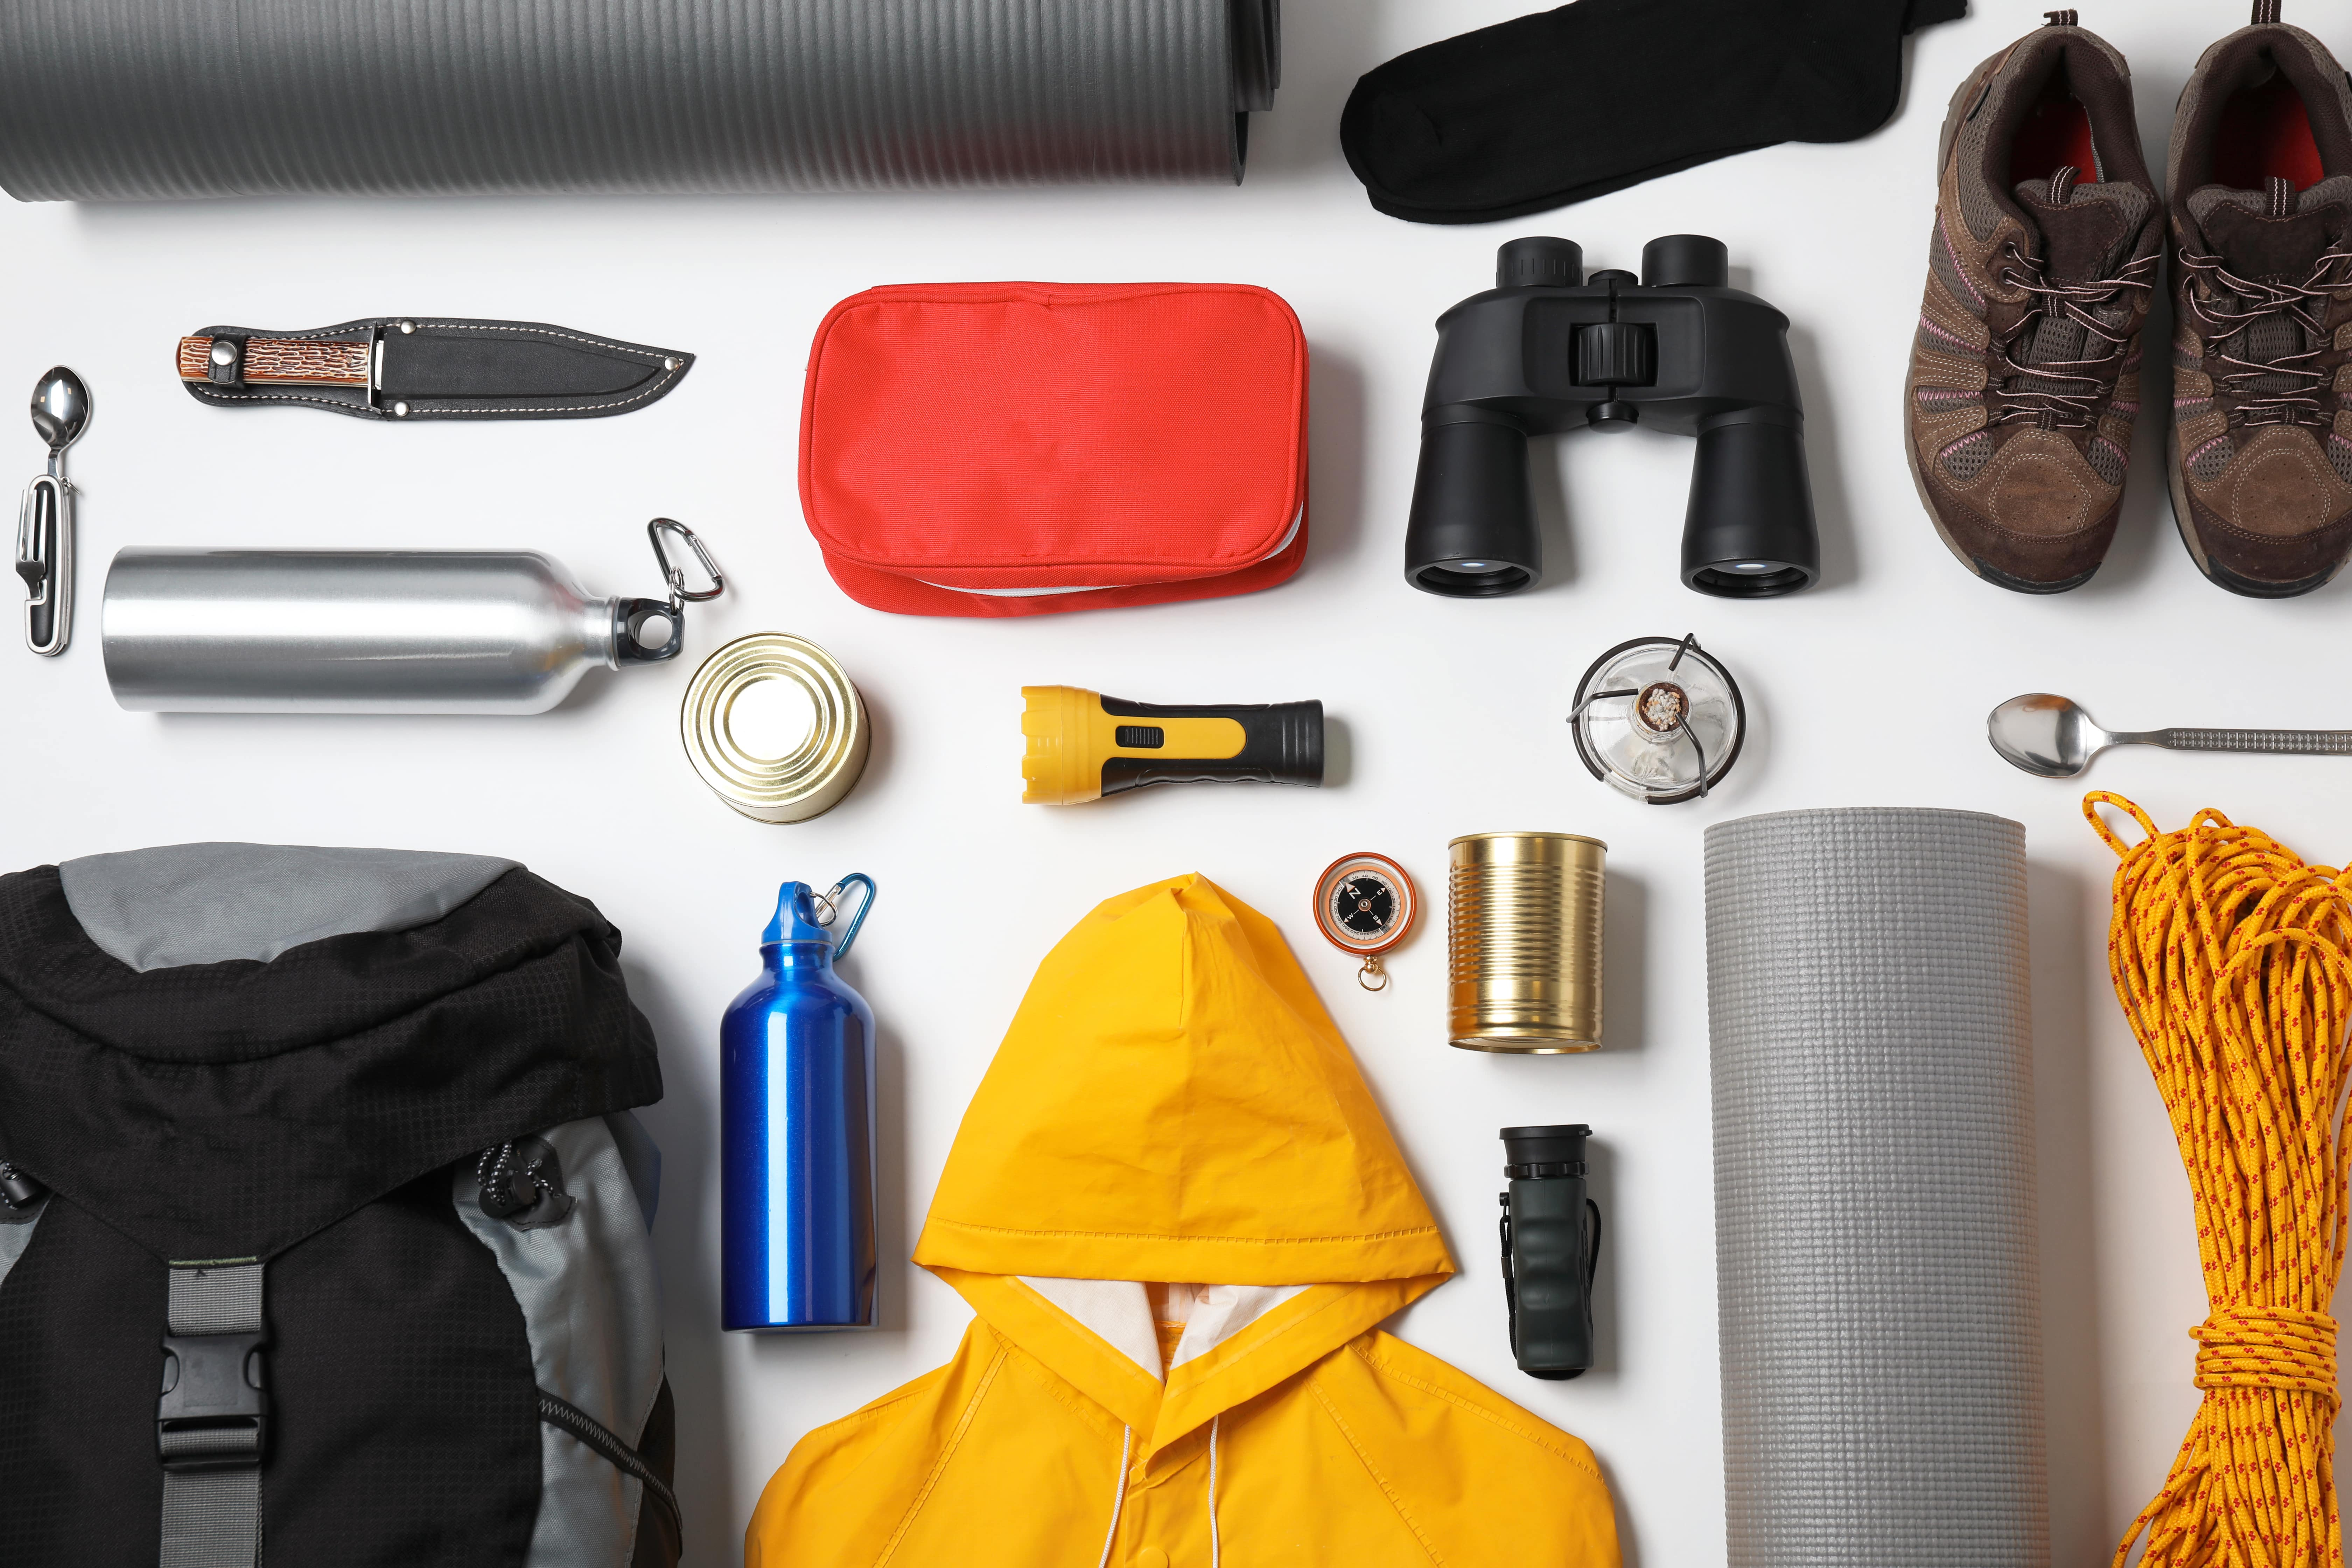 10 Most Forgotten Items to Pack for a Camping Trip